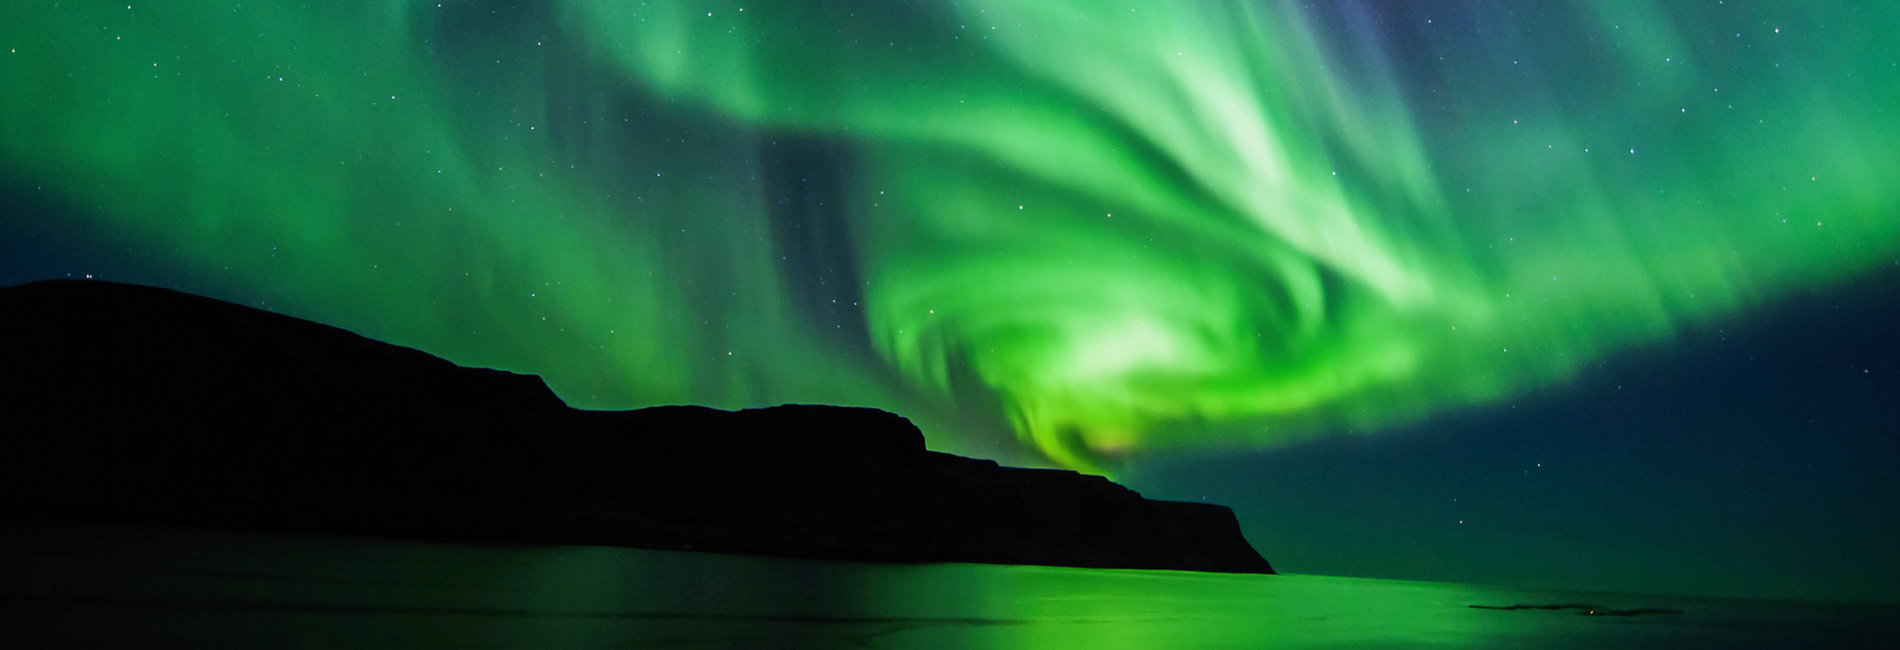 Northern Lights Experience in Reykjavik, Iceland Image